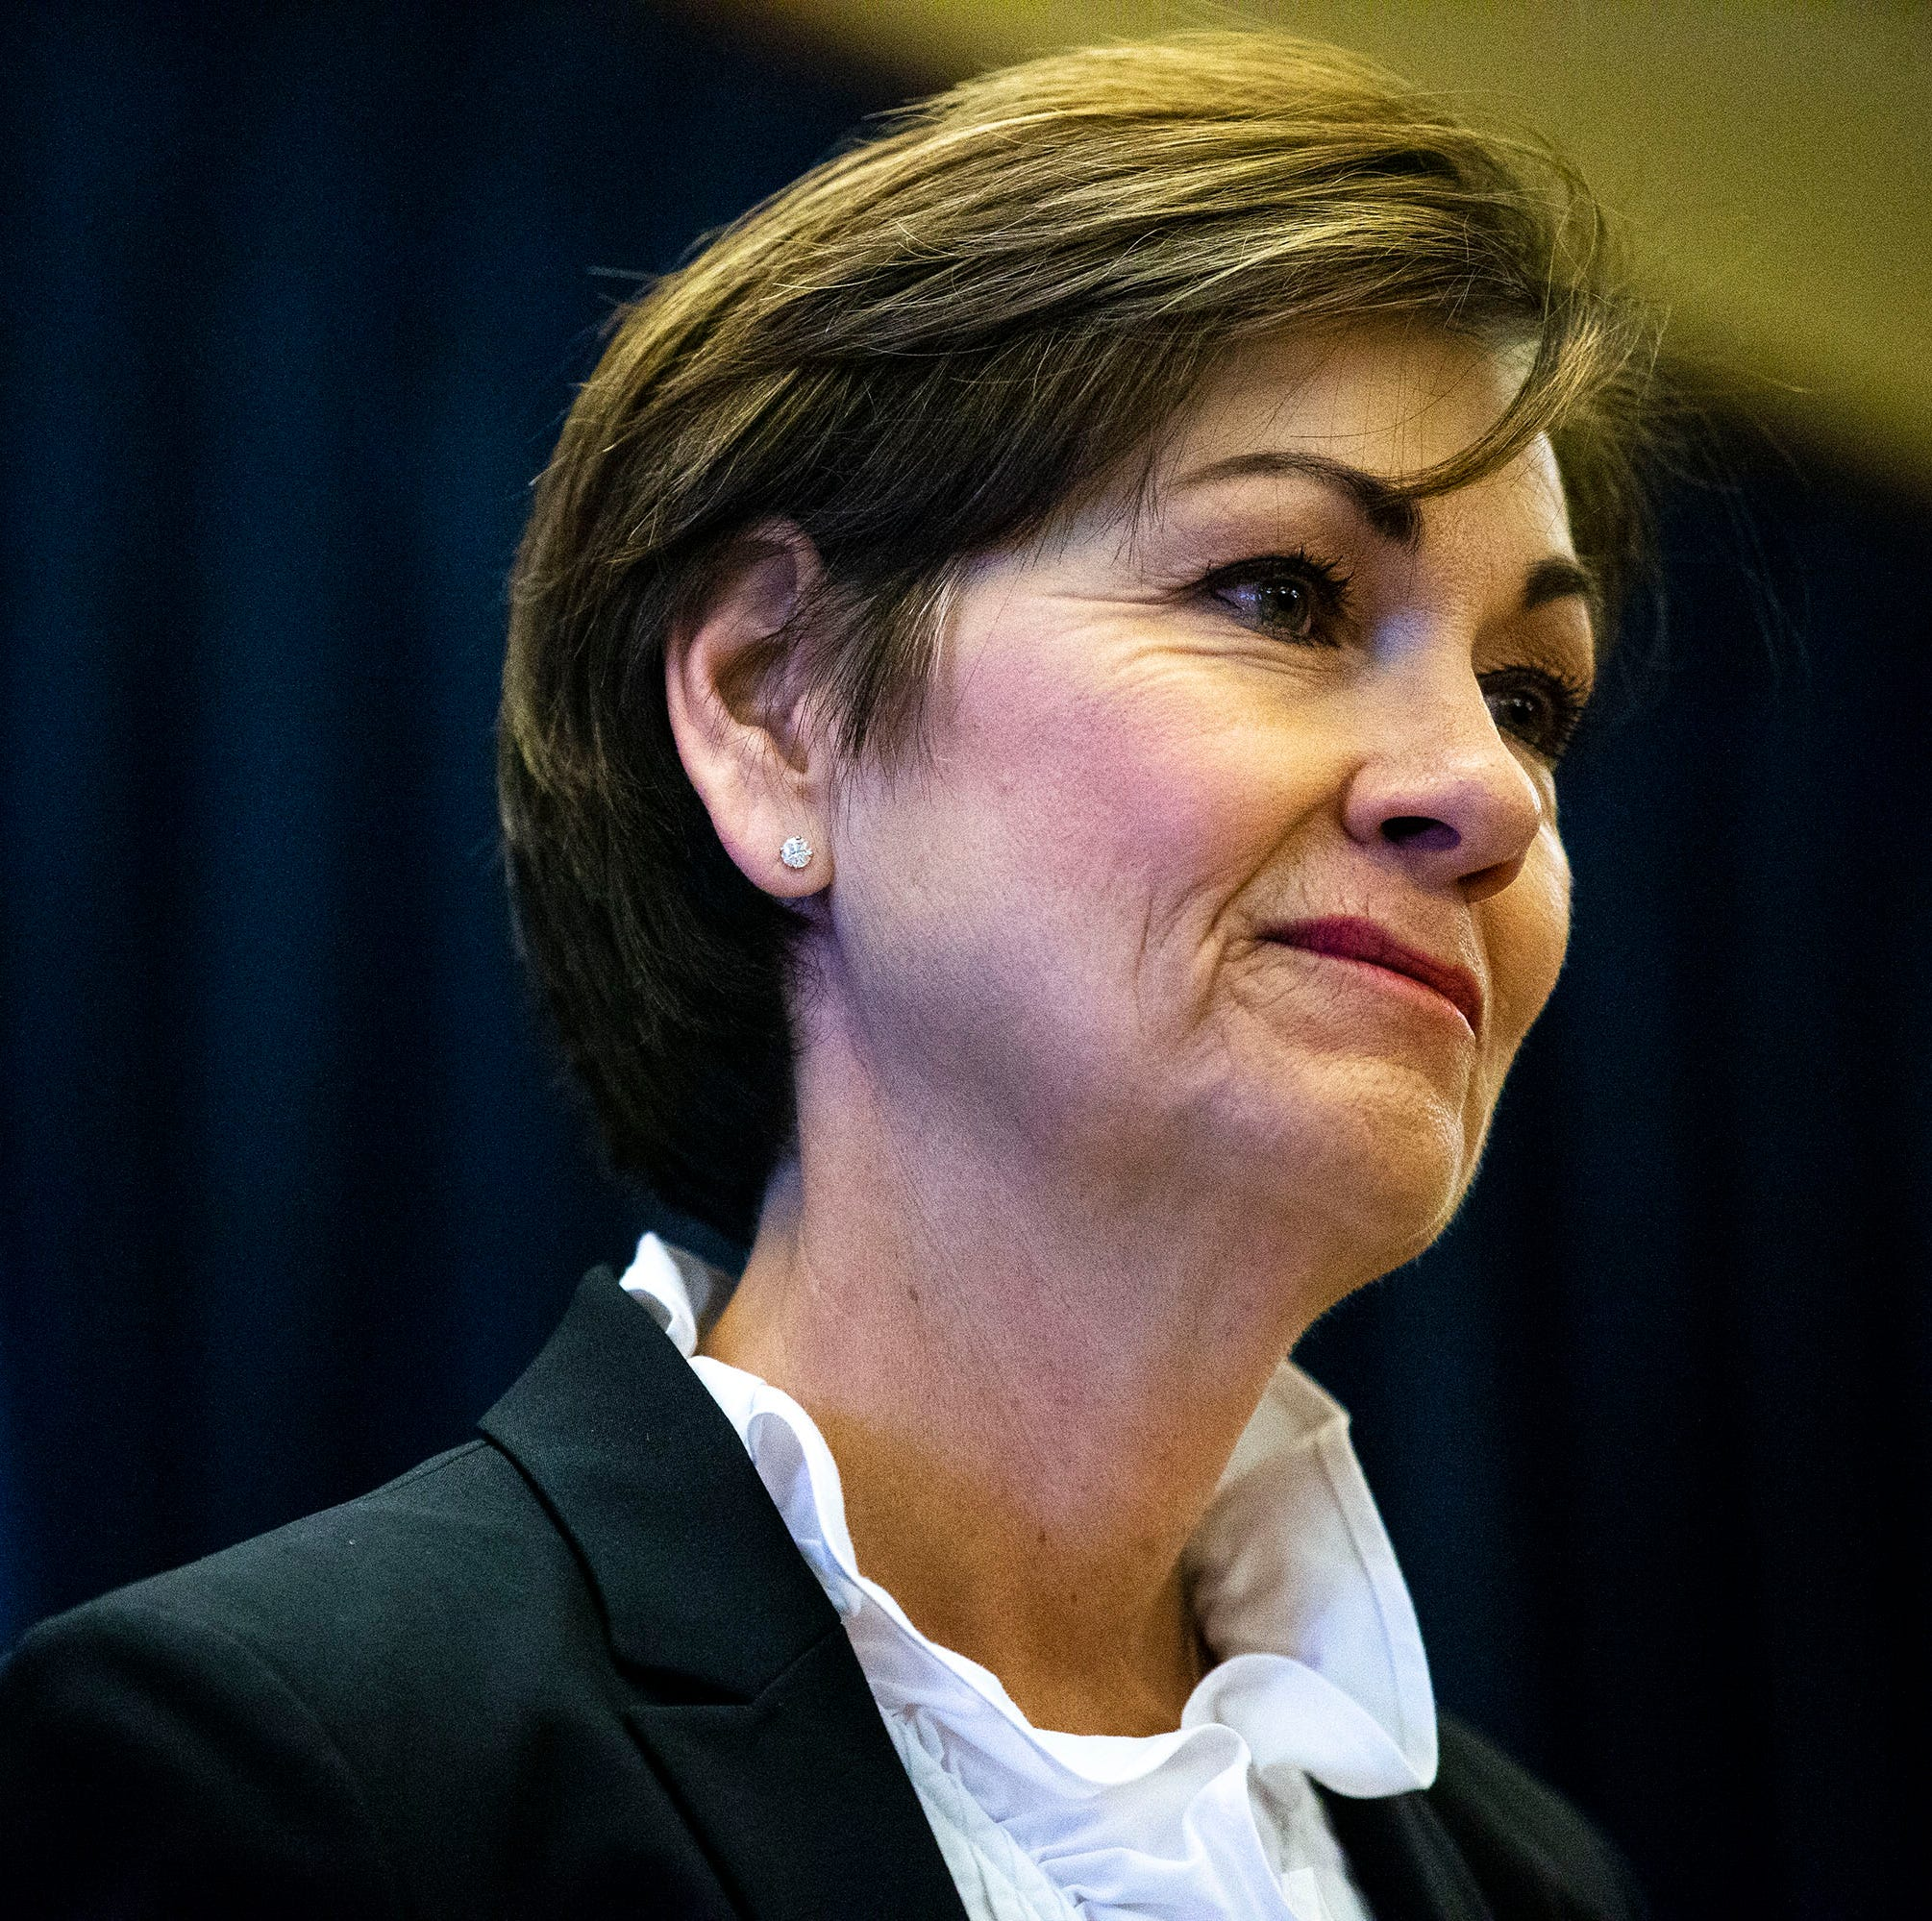 Governor Kim Reynolds speaks to the press and takes questions during a news conference on Tuesday, April 23, 2019, at the Iowa State Capitol in Des Moines.